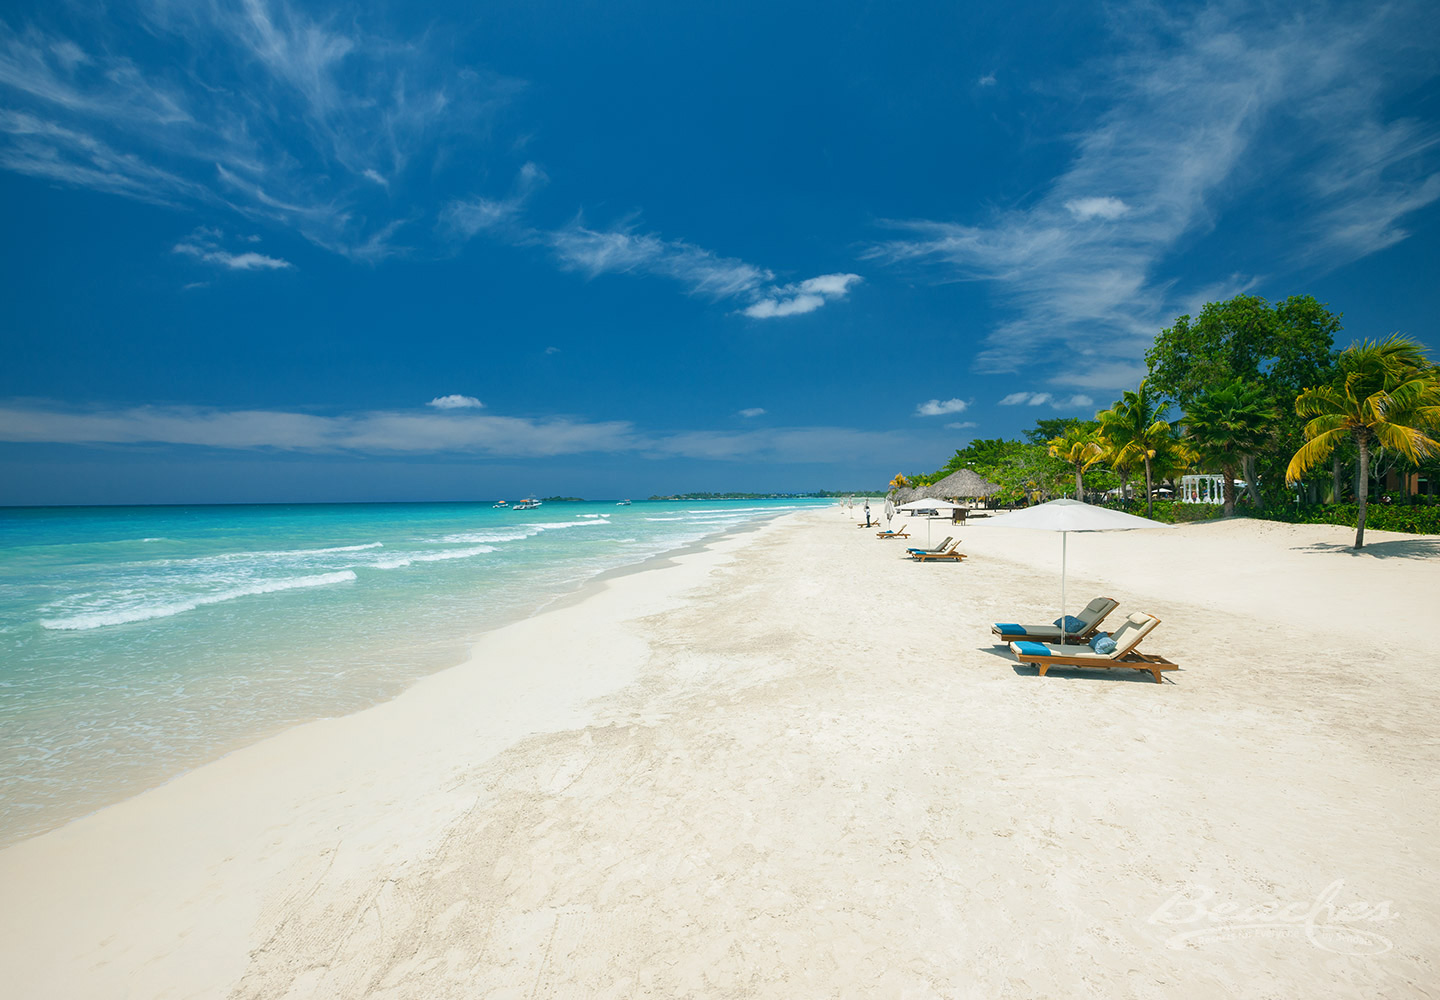 Travel Agency All-Inclusive Resort Beaches Negril 005